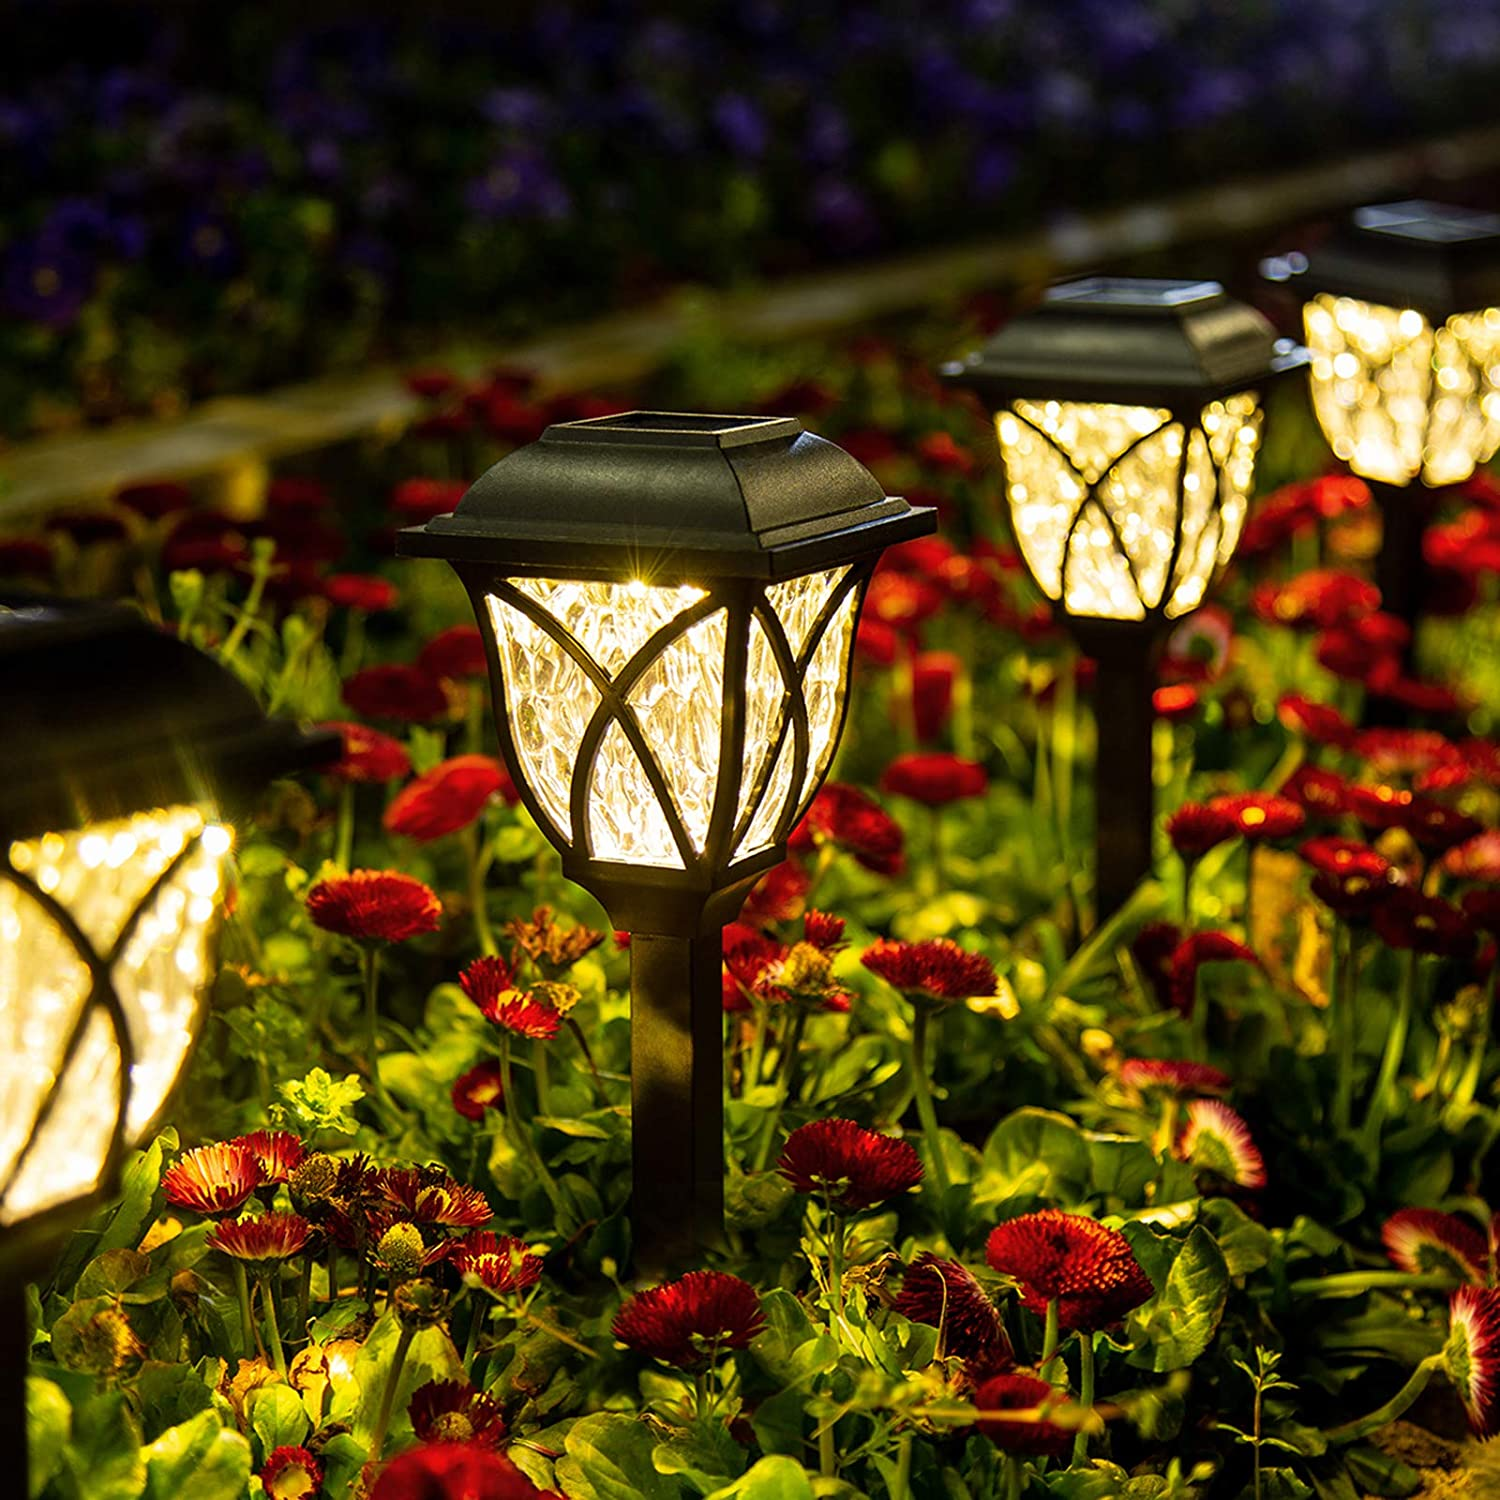 GIGALUMI Solar Pathway Lights Outdoor, 6 Pack LED Solar Landscape Lights, Waterproof Solar Powered Pathway Lights for Yard, Patio, Landscape, Walkway (Warm White)